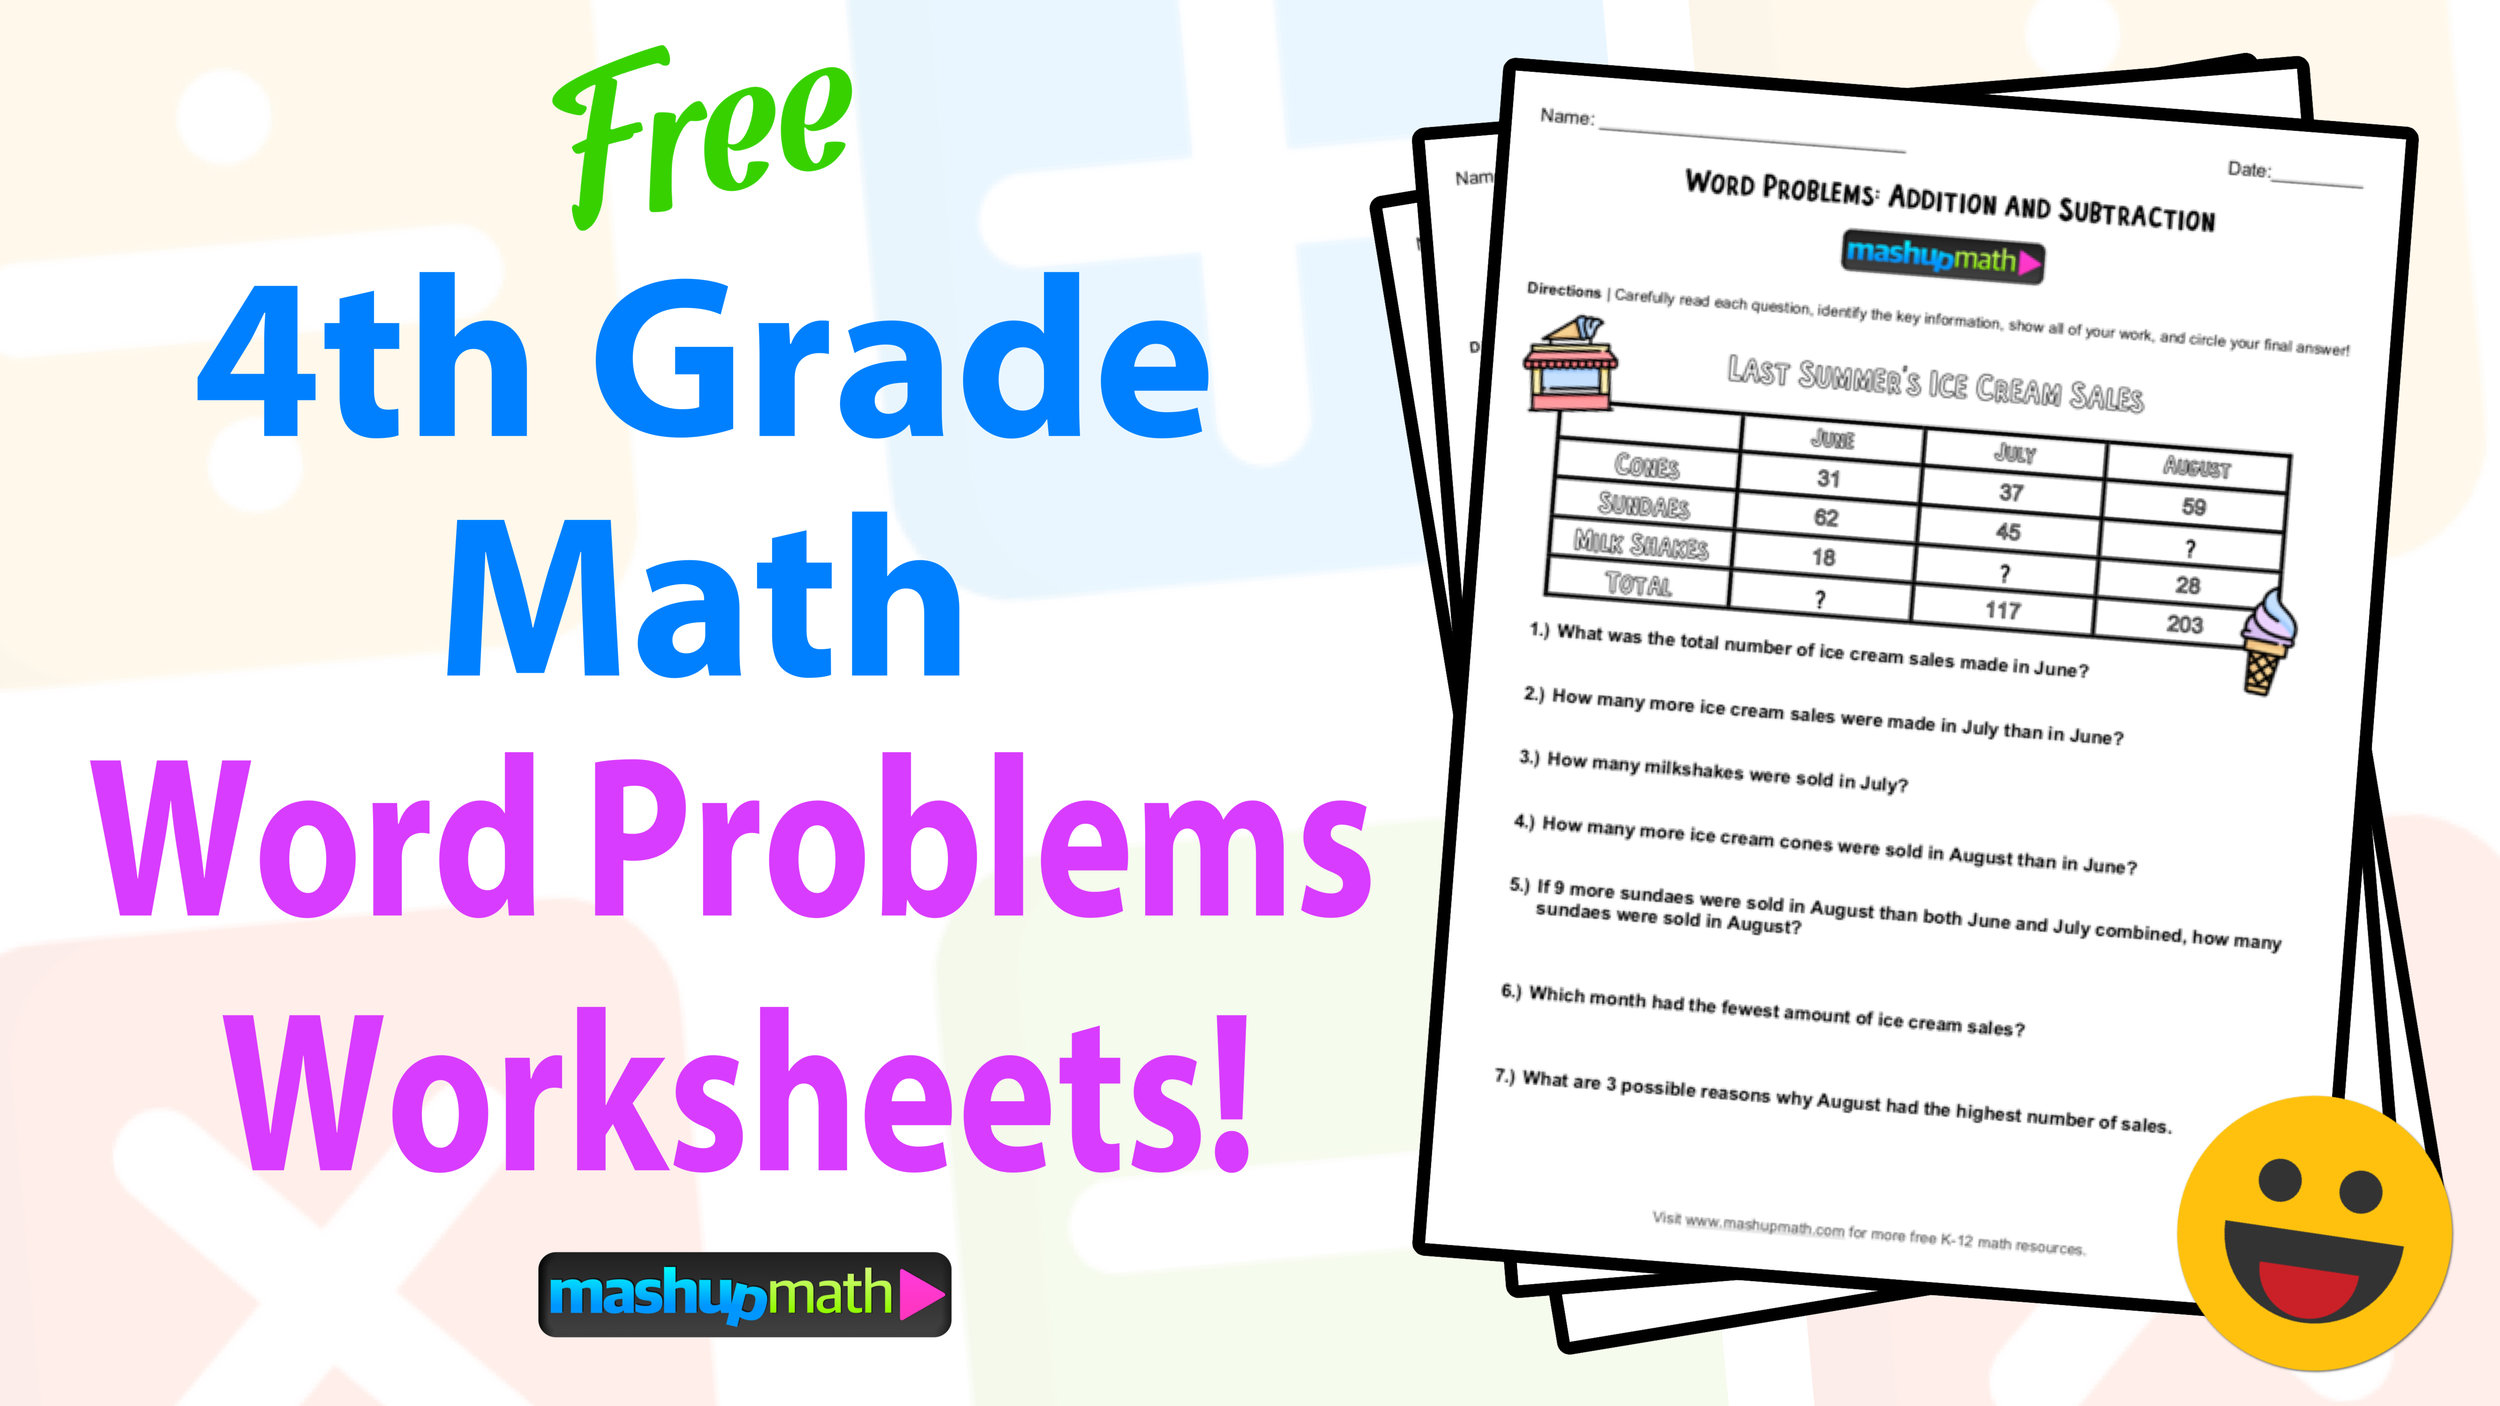 4th Grade Math Word Problems Free Worksheets With Answers